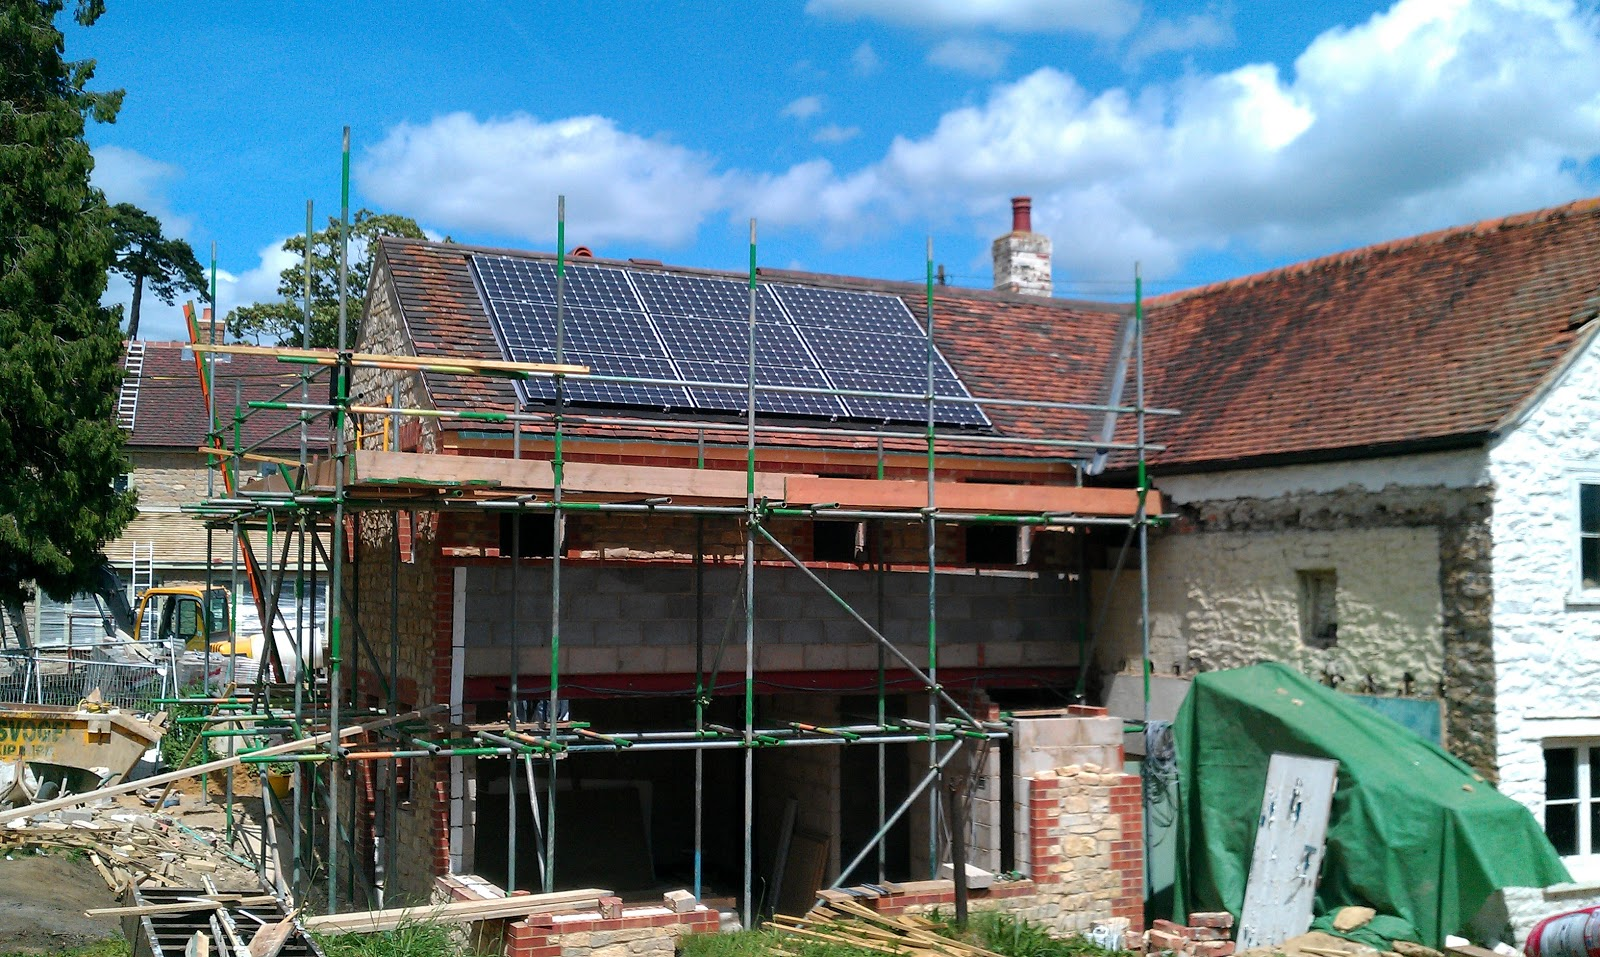 Forge House Roof Tiles And Solar Panels